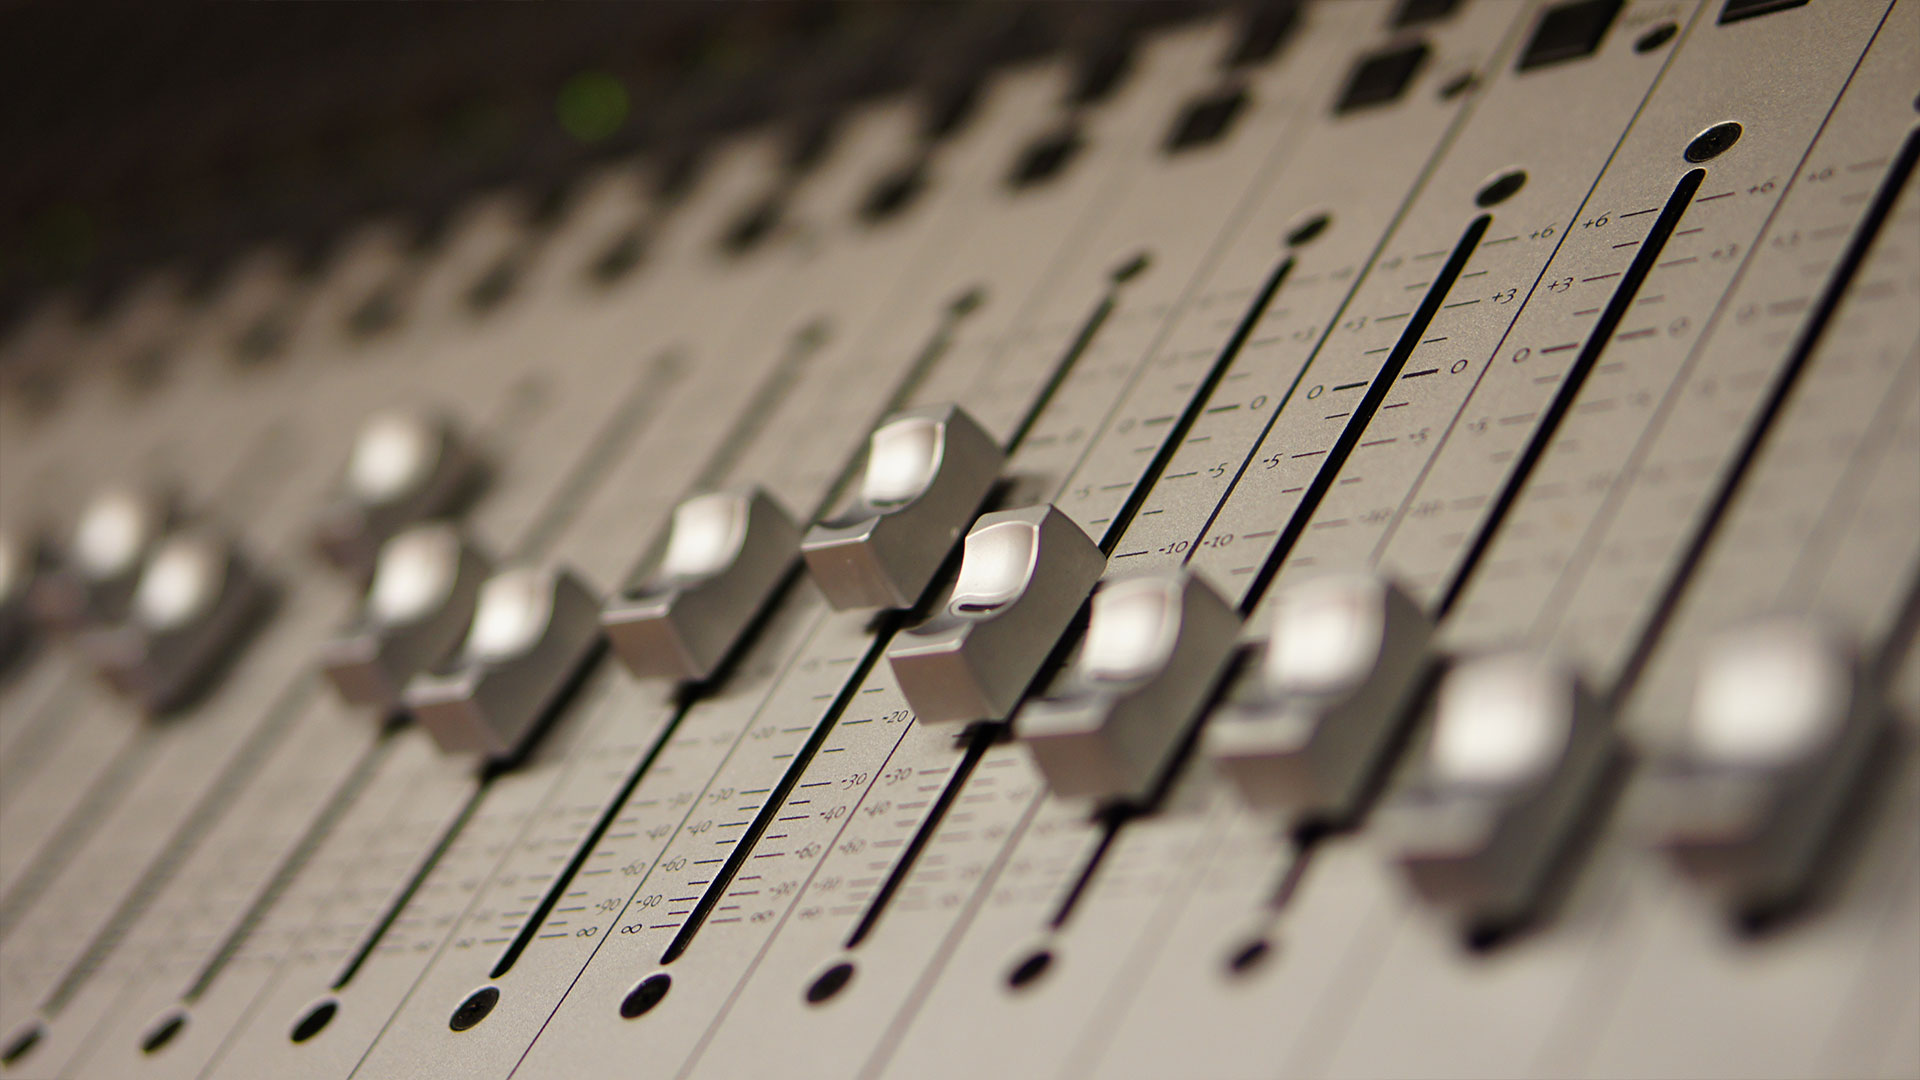 Audio Mixing Dubbing Mixer Vocal Booth Voiceover Recording Sound Studio Audio Post Production London Wimbledon